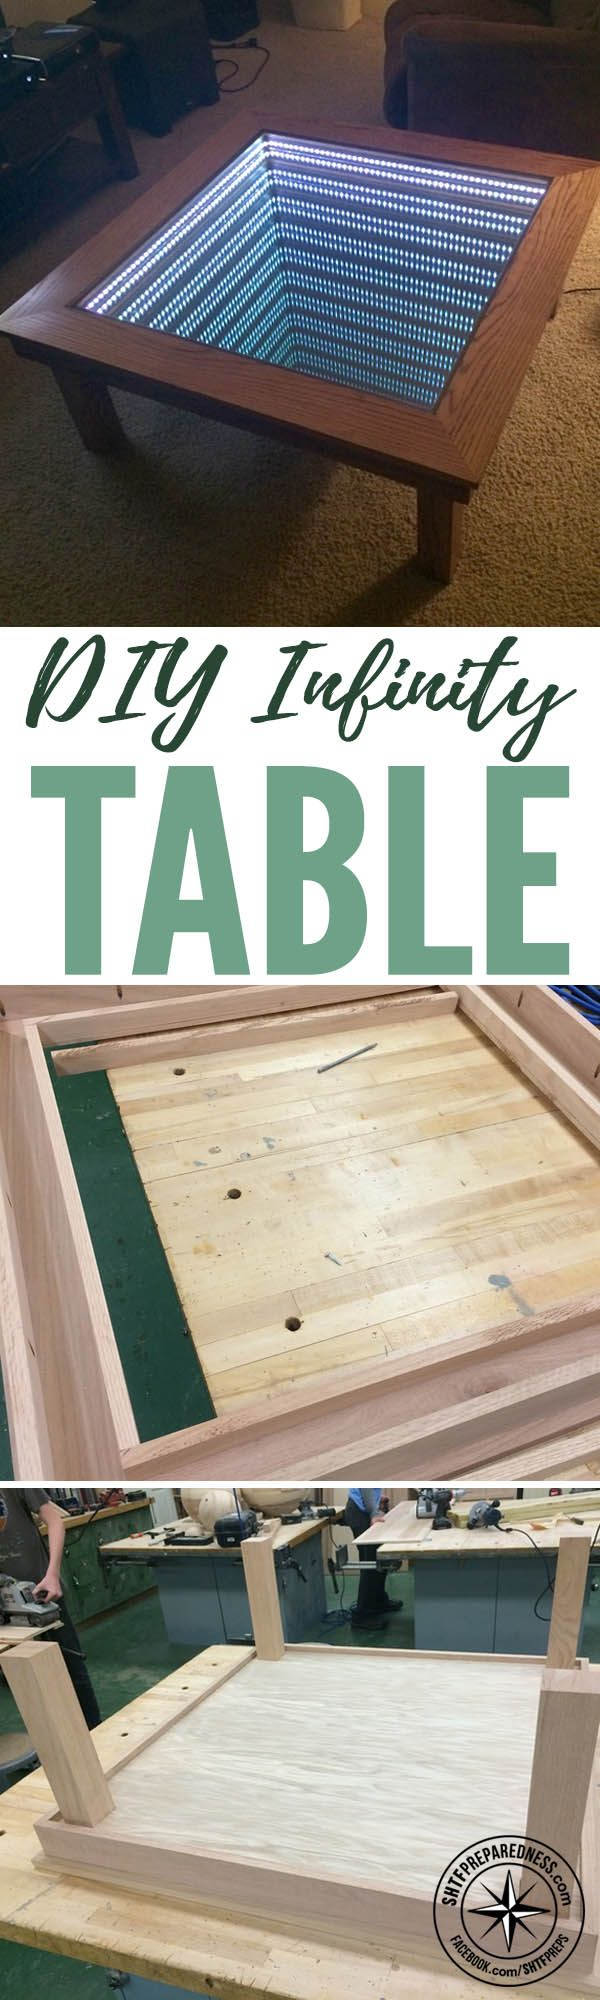 DIY Infinity Table Woodworking FurnitureDiy WoodworkingDiy FurnitureWoodworking